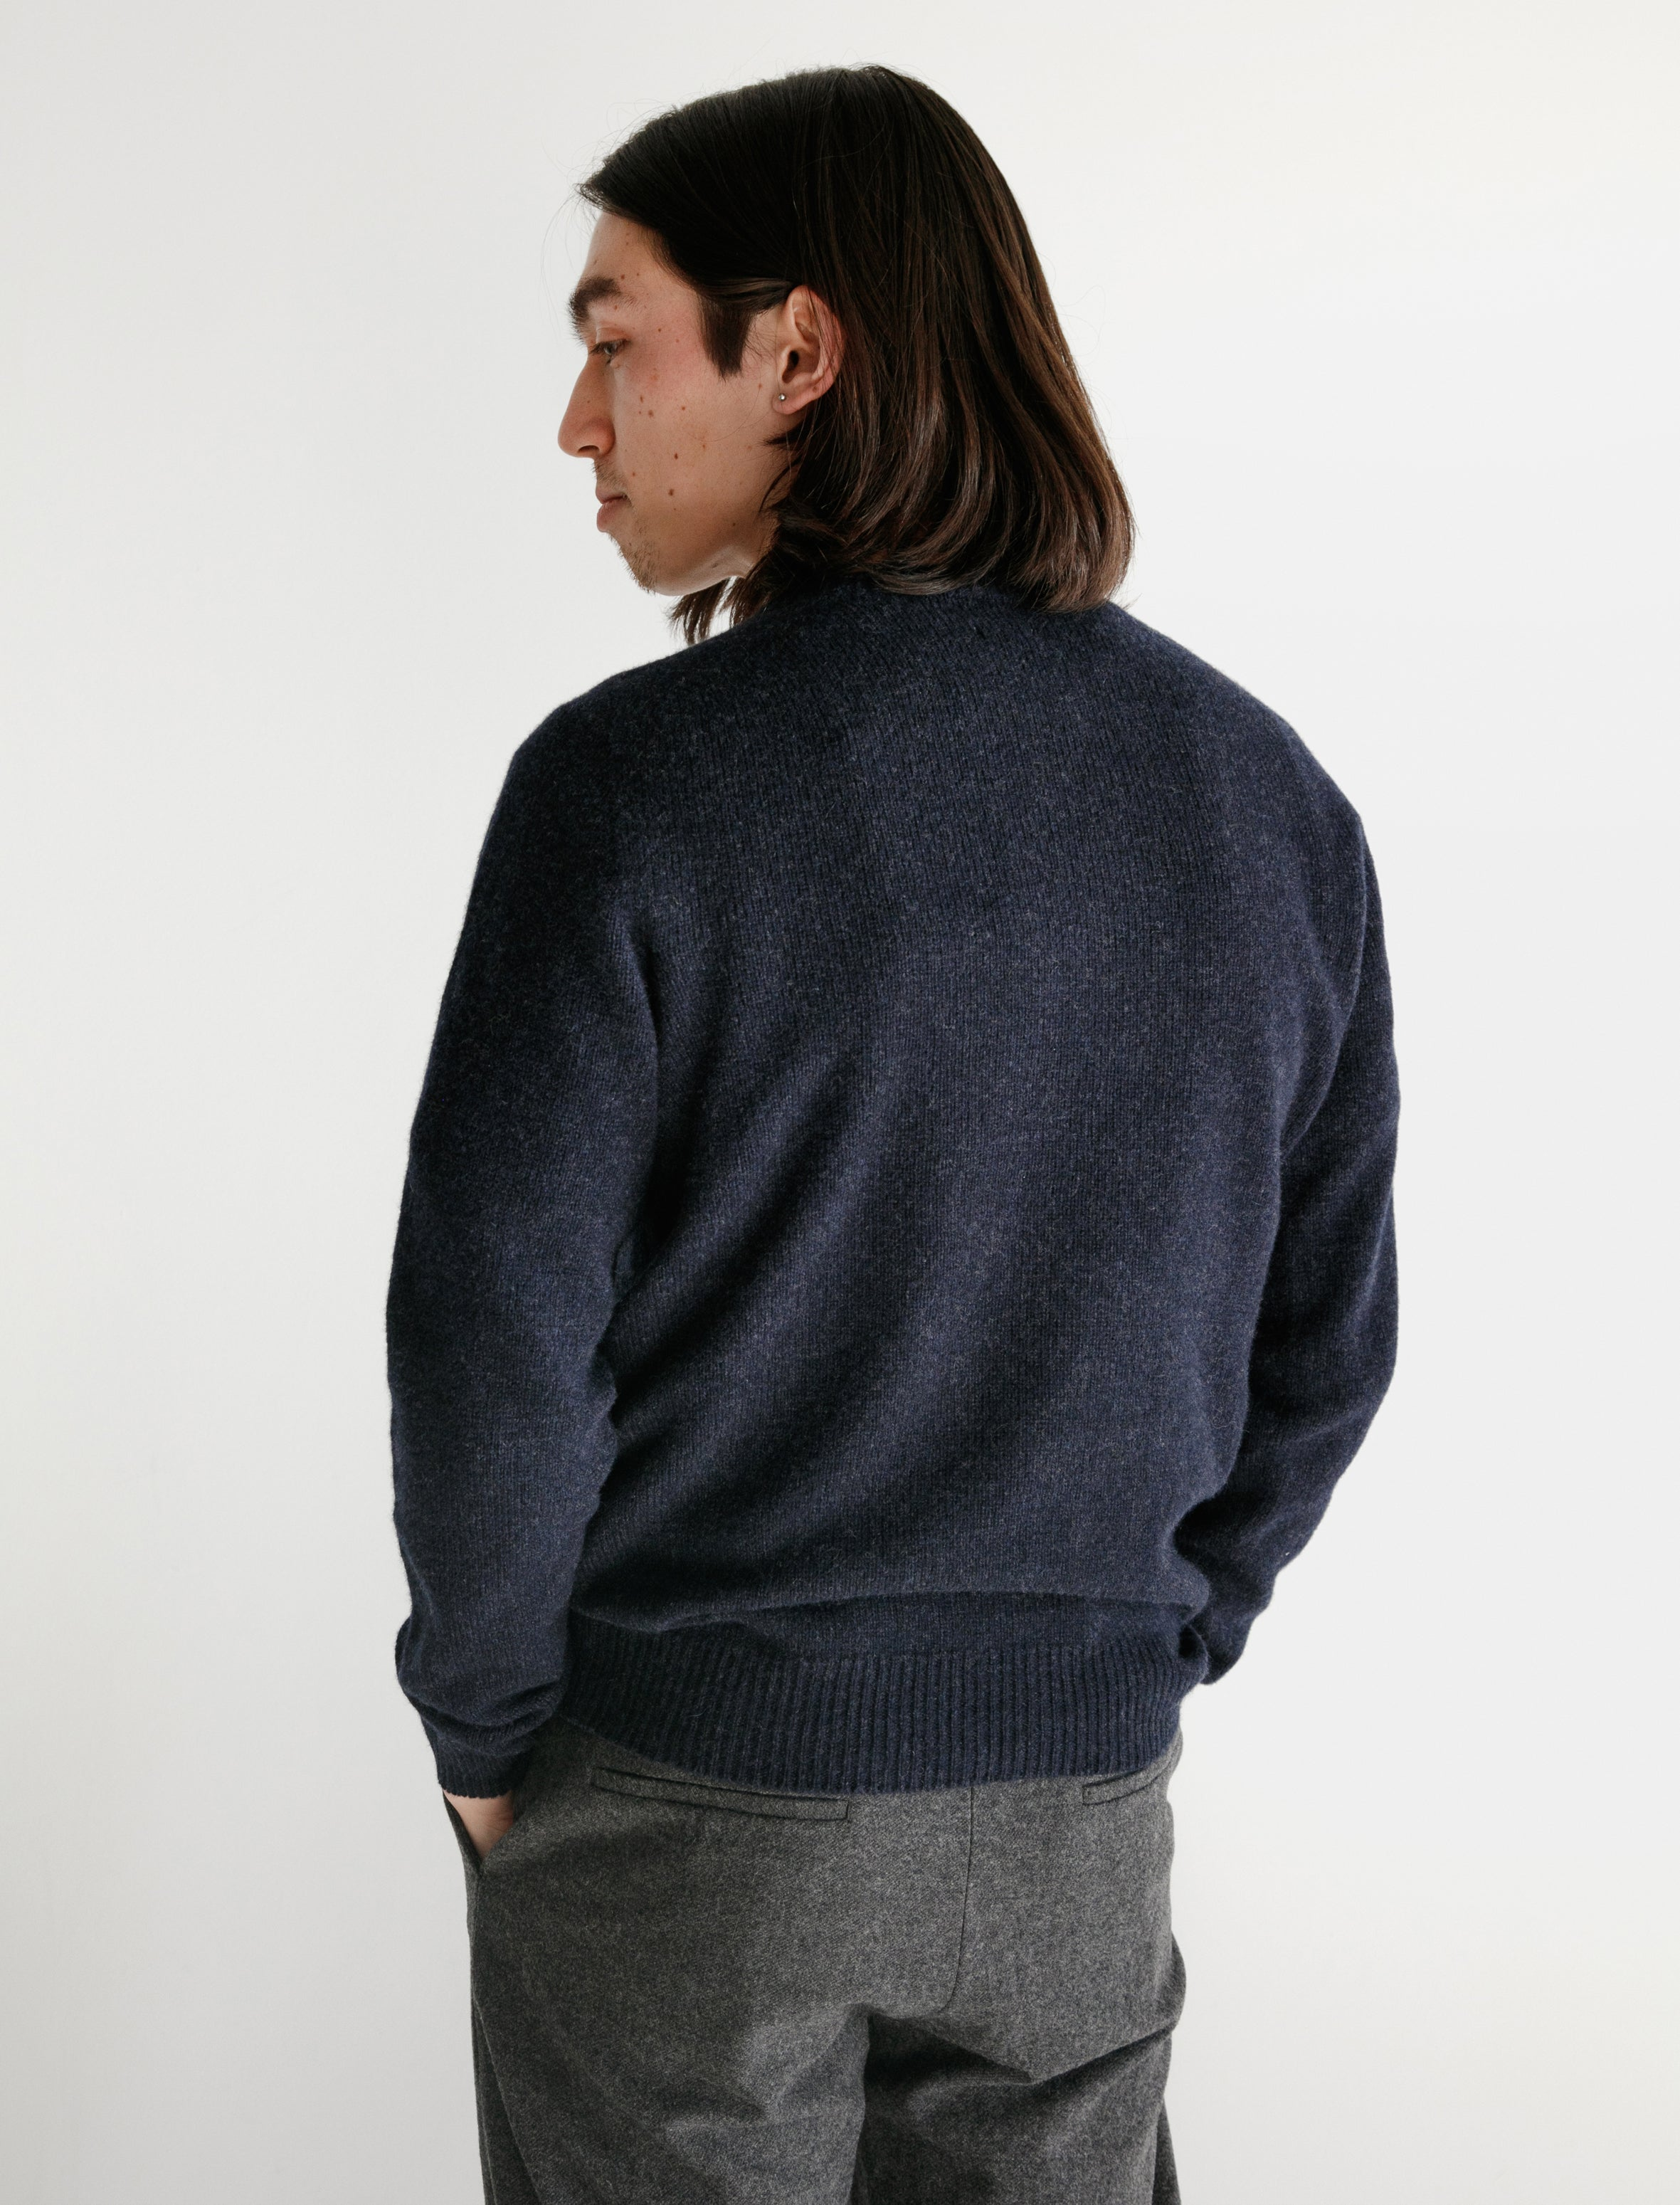 Neighbour Merino Cashmere Sweater Navy